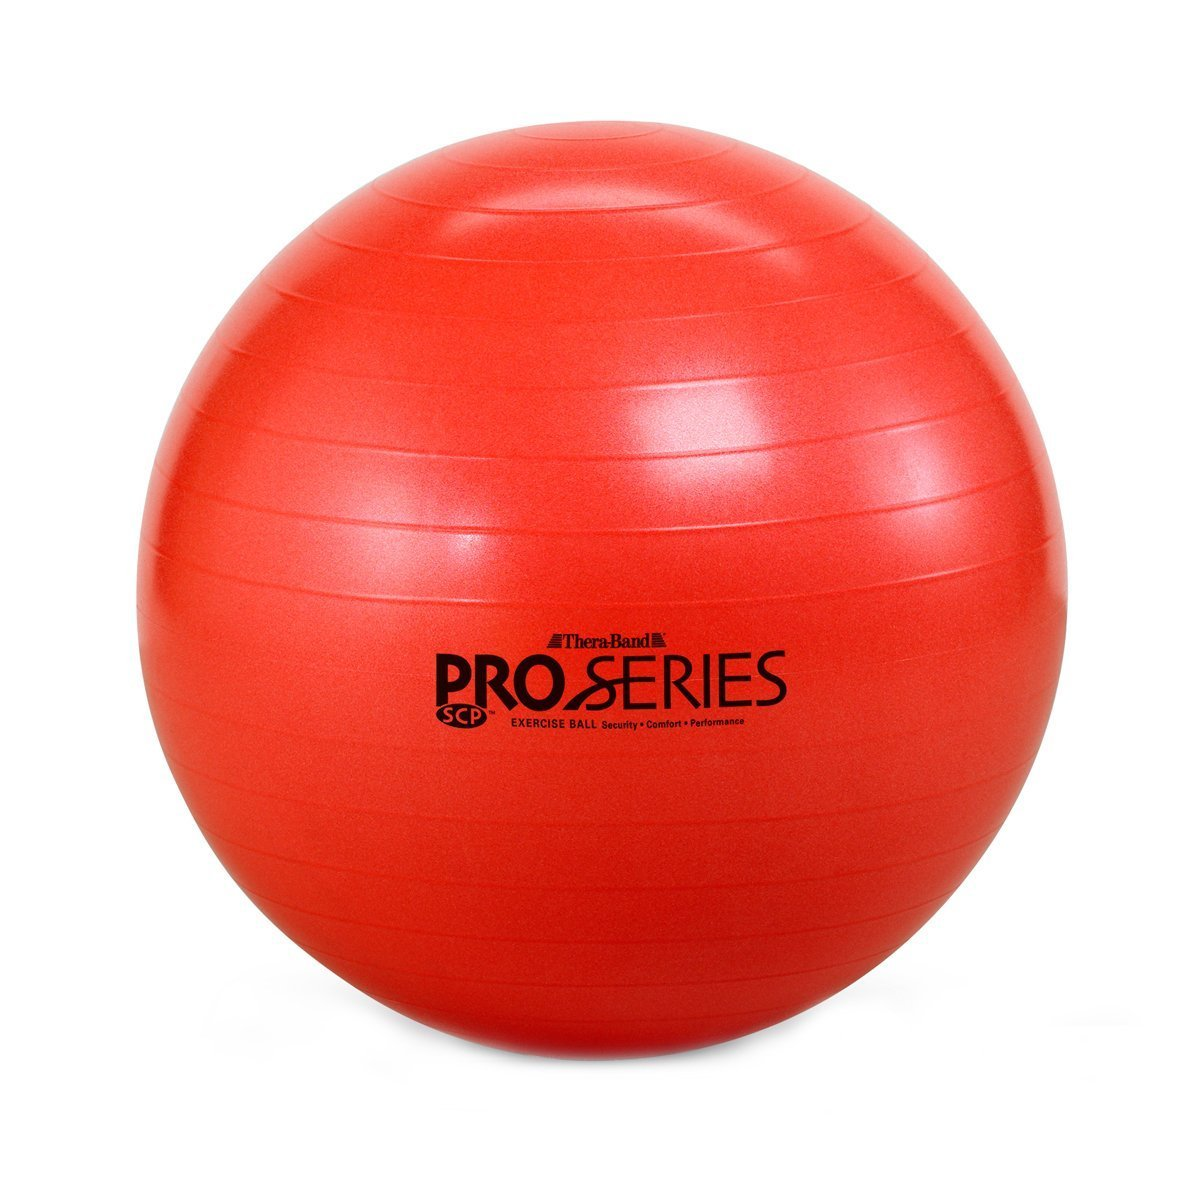 TheraBand Pro Series Exercise and Stability Ball with 55 cm Diameter, Professional Slow Deflate & Burst Resistant Fitness Ball for Improved Posture, Balance, Yoga, Pilates, Core Stability, Red